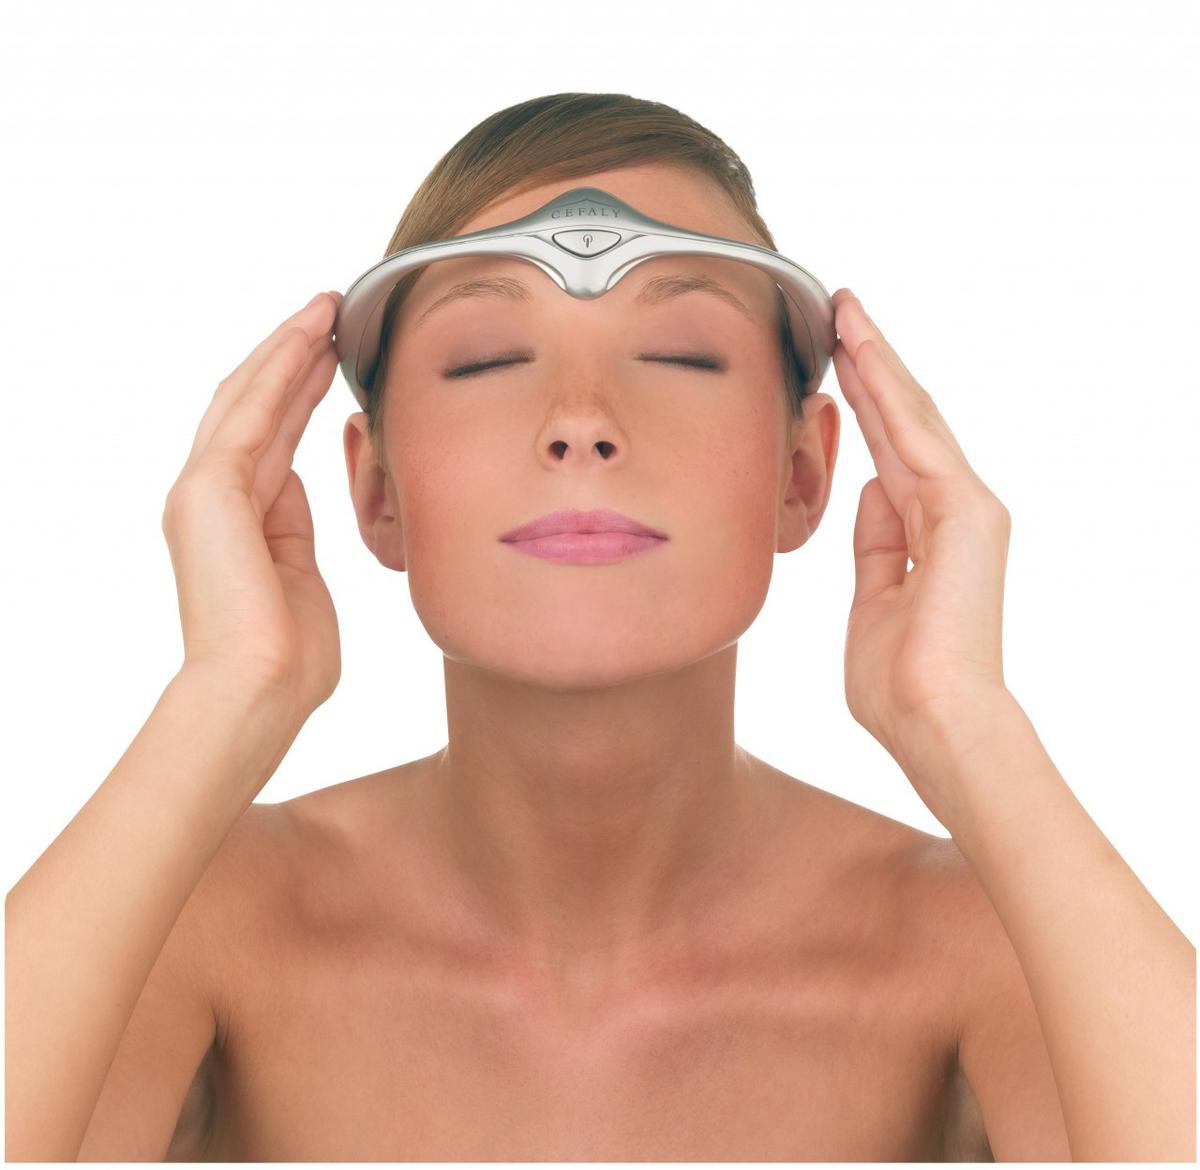 The Cefaly headband is claimed to not only treat migraines, but help to reduce their frequency through regular use